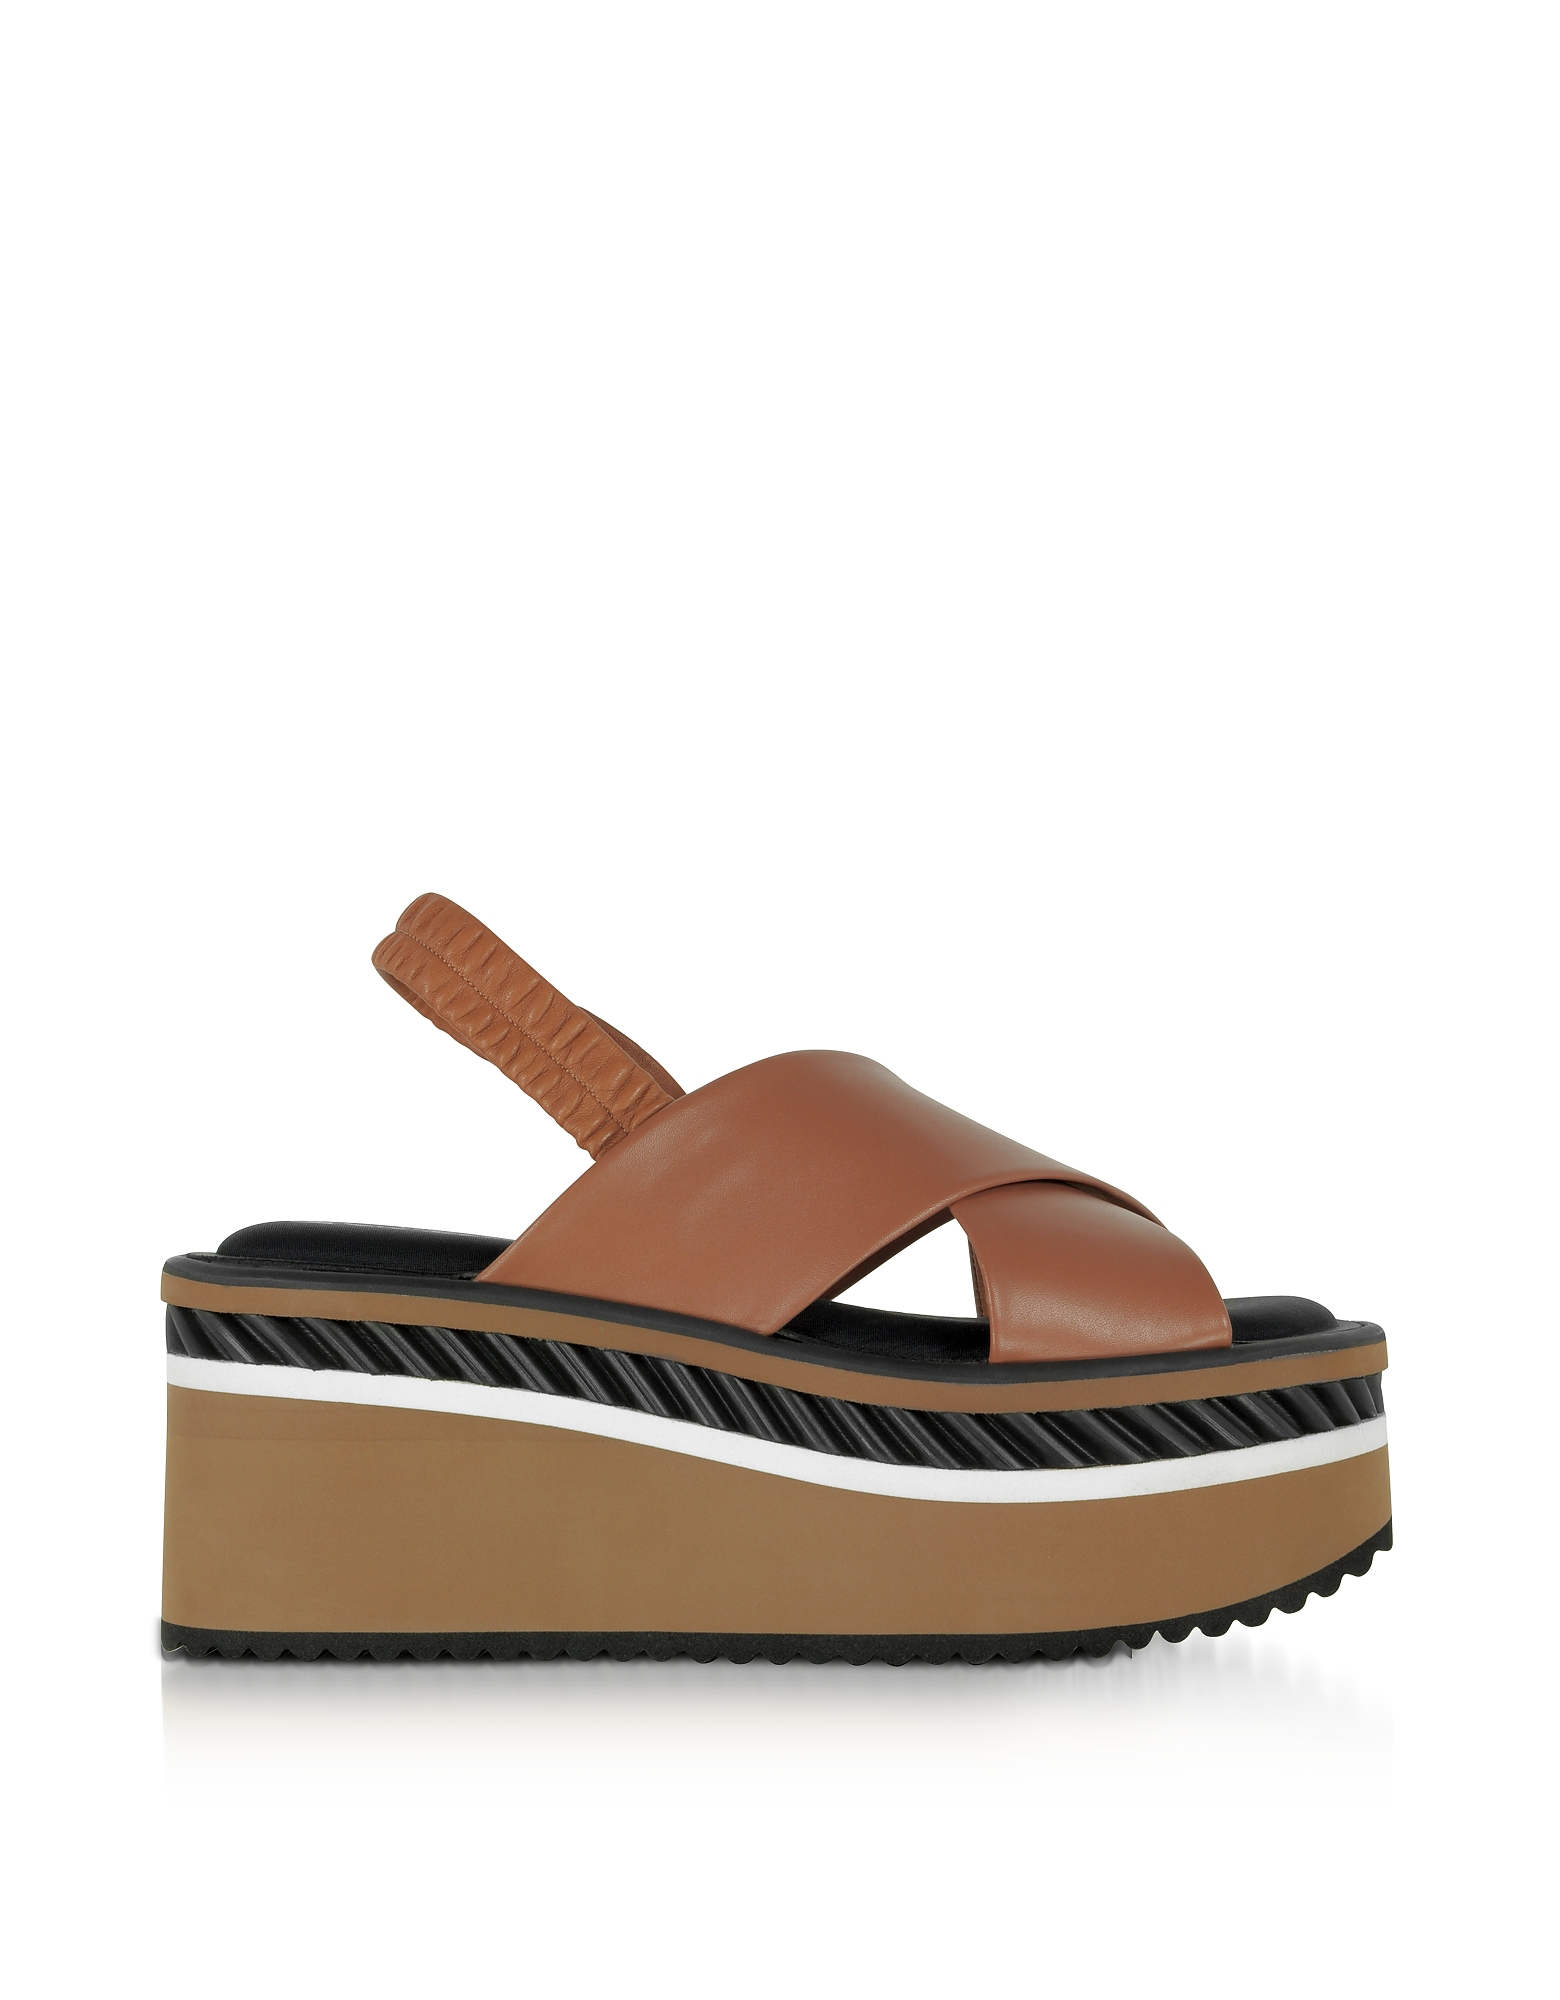 Robert Clergerie Shoes, Omin Terracotta Brown Leather Platform Sandals